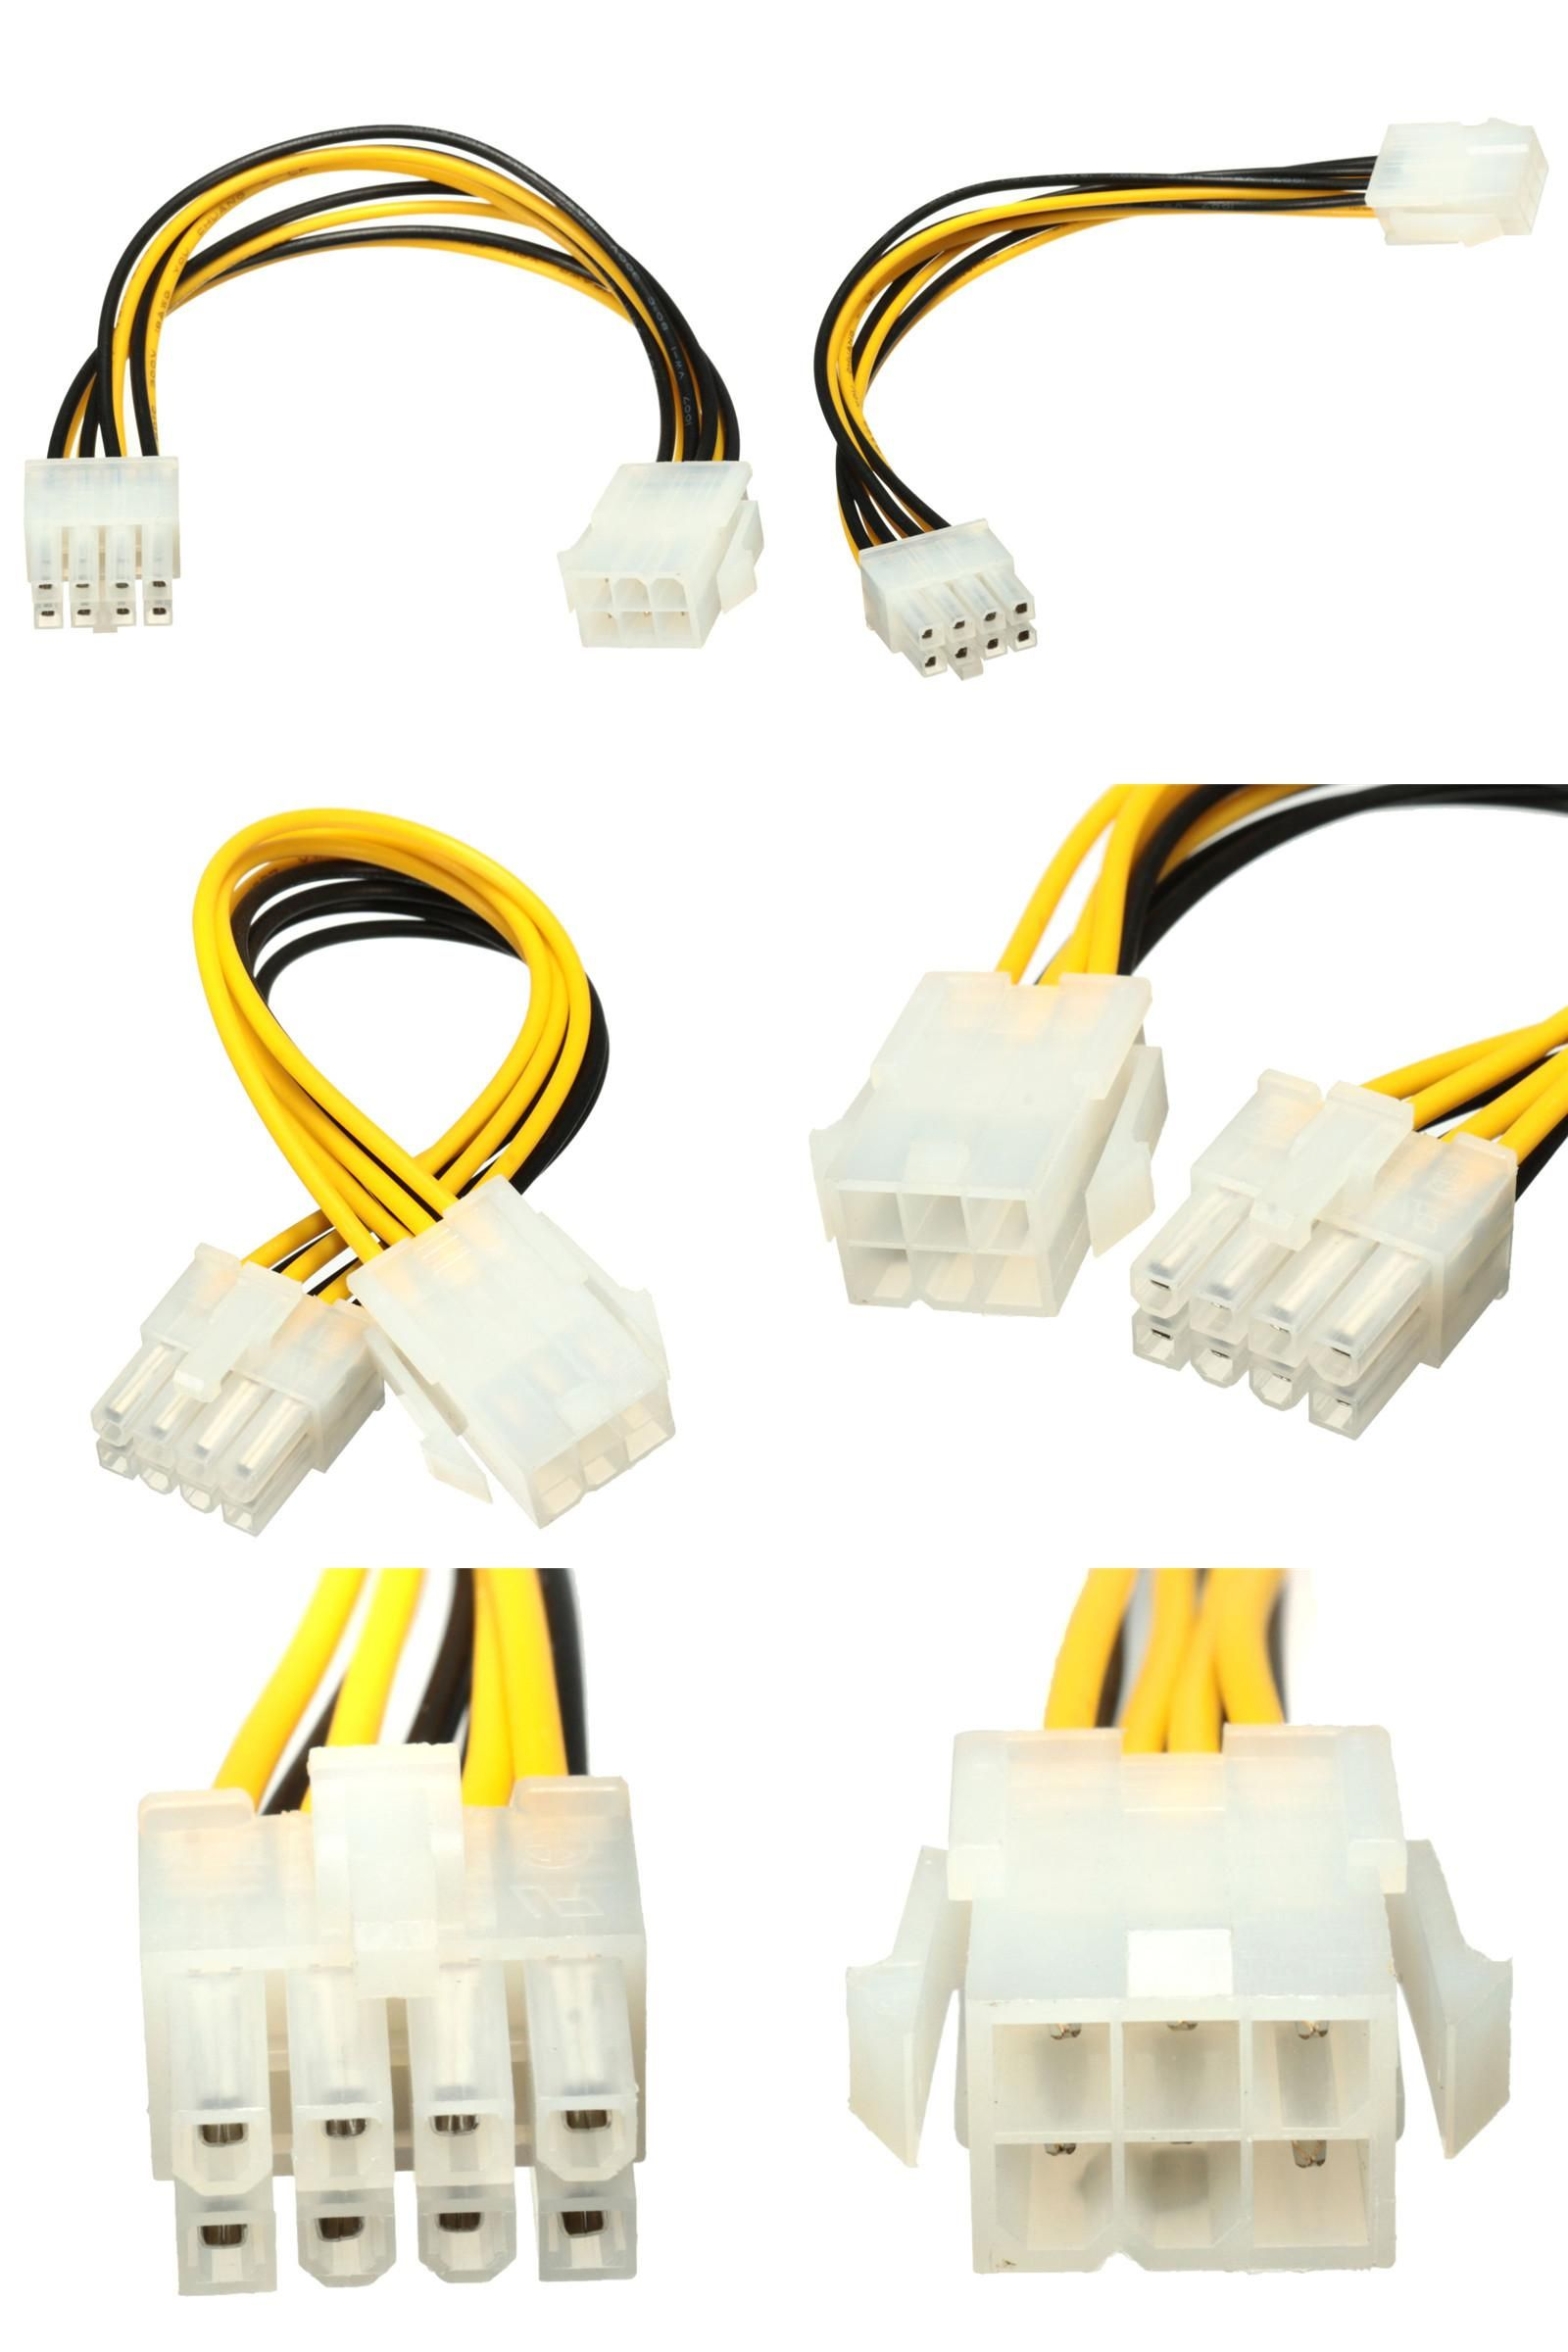 Visit To Buy High Quality 4pcs 20cm Pci Express 6 Pin Female 8 Autostar Usb Wiring Diagram